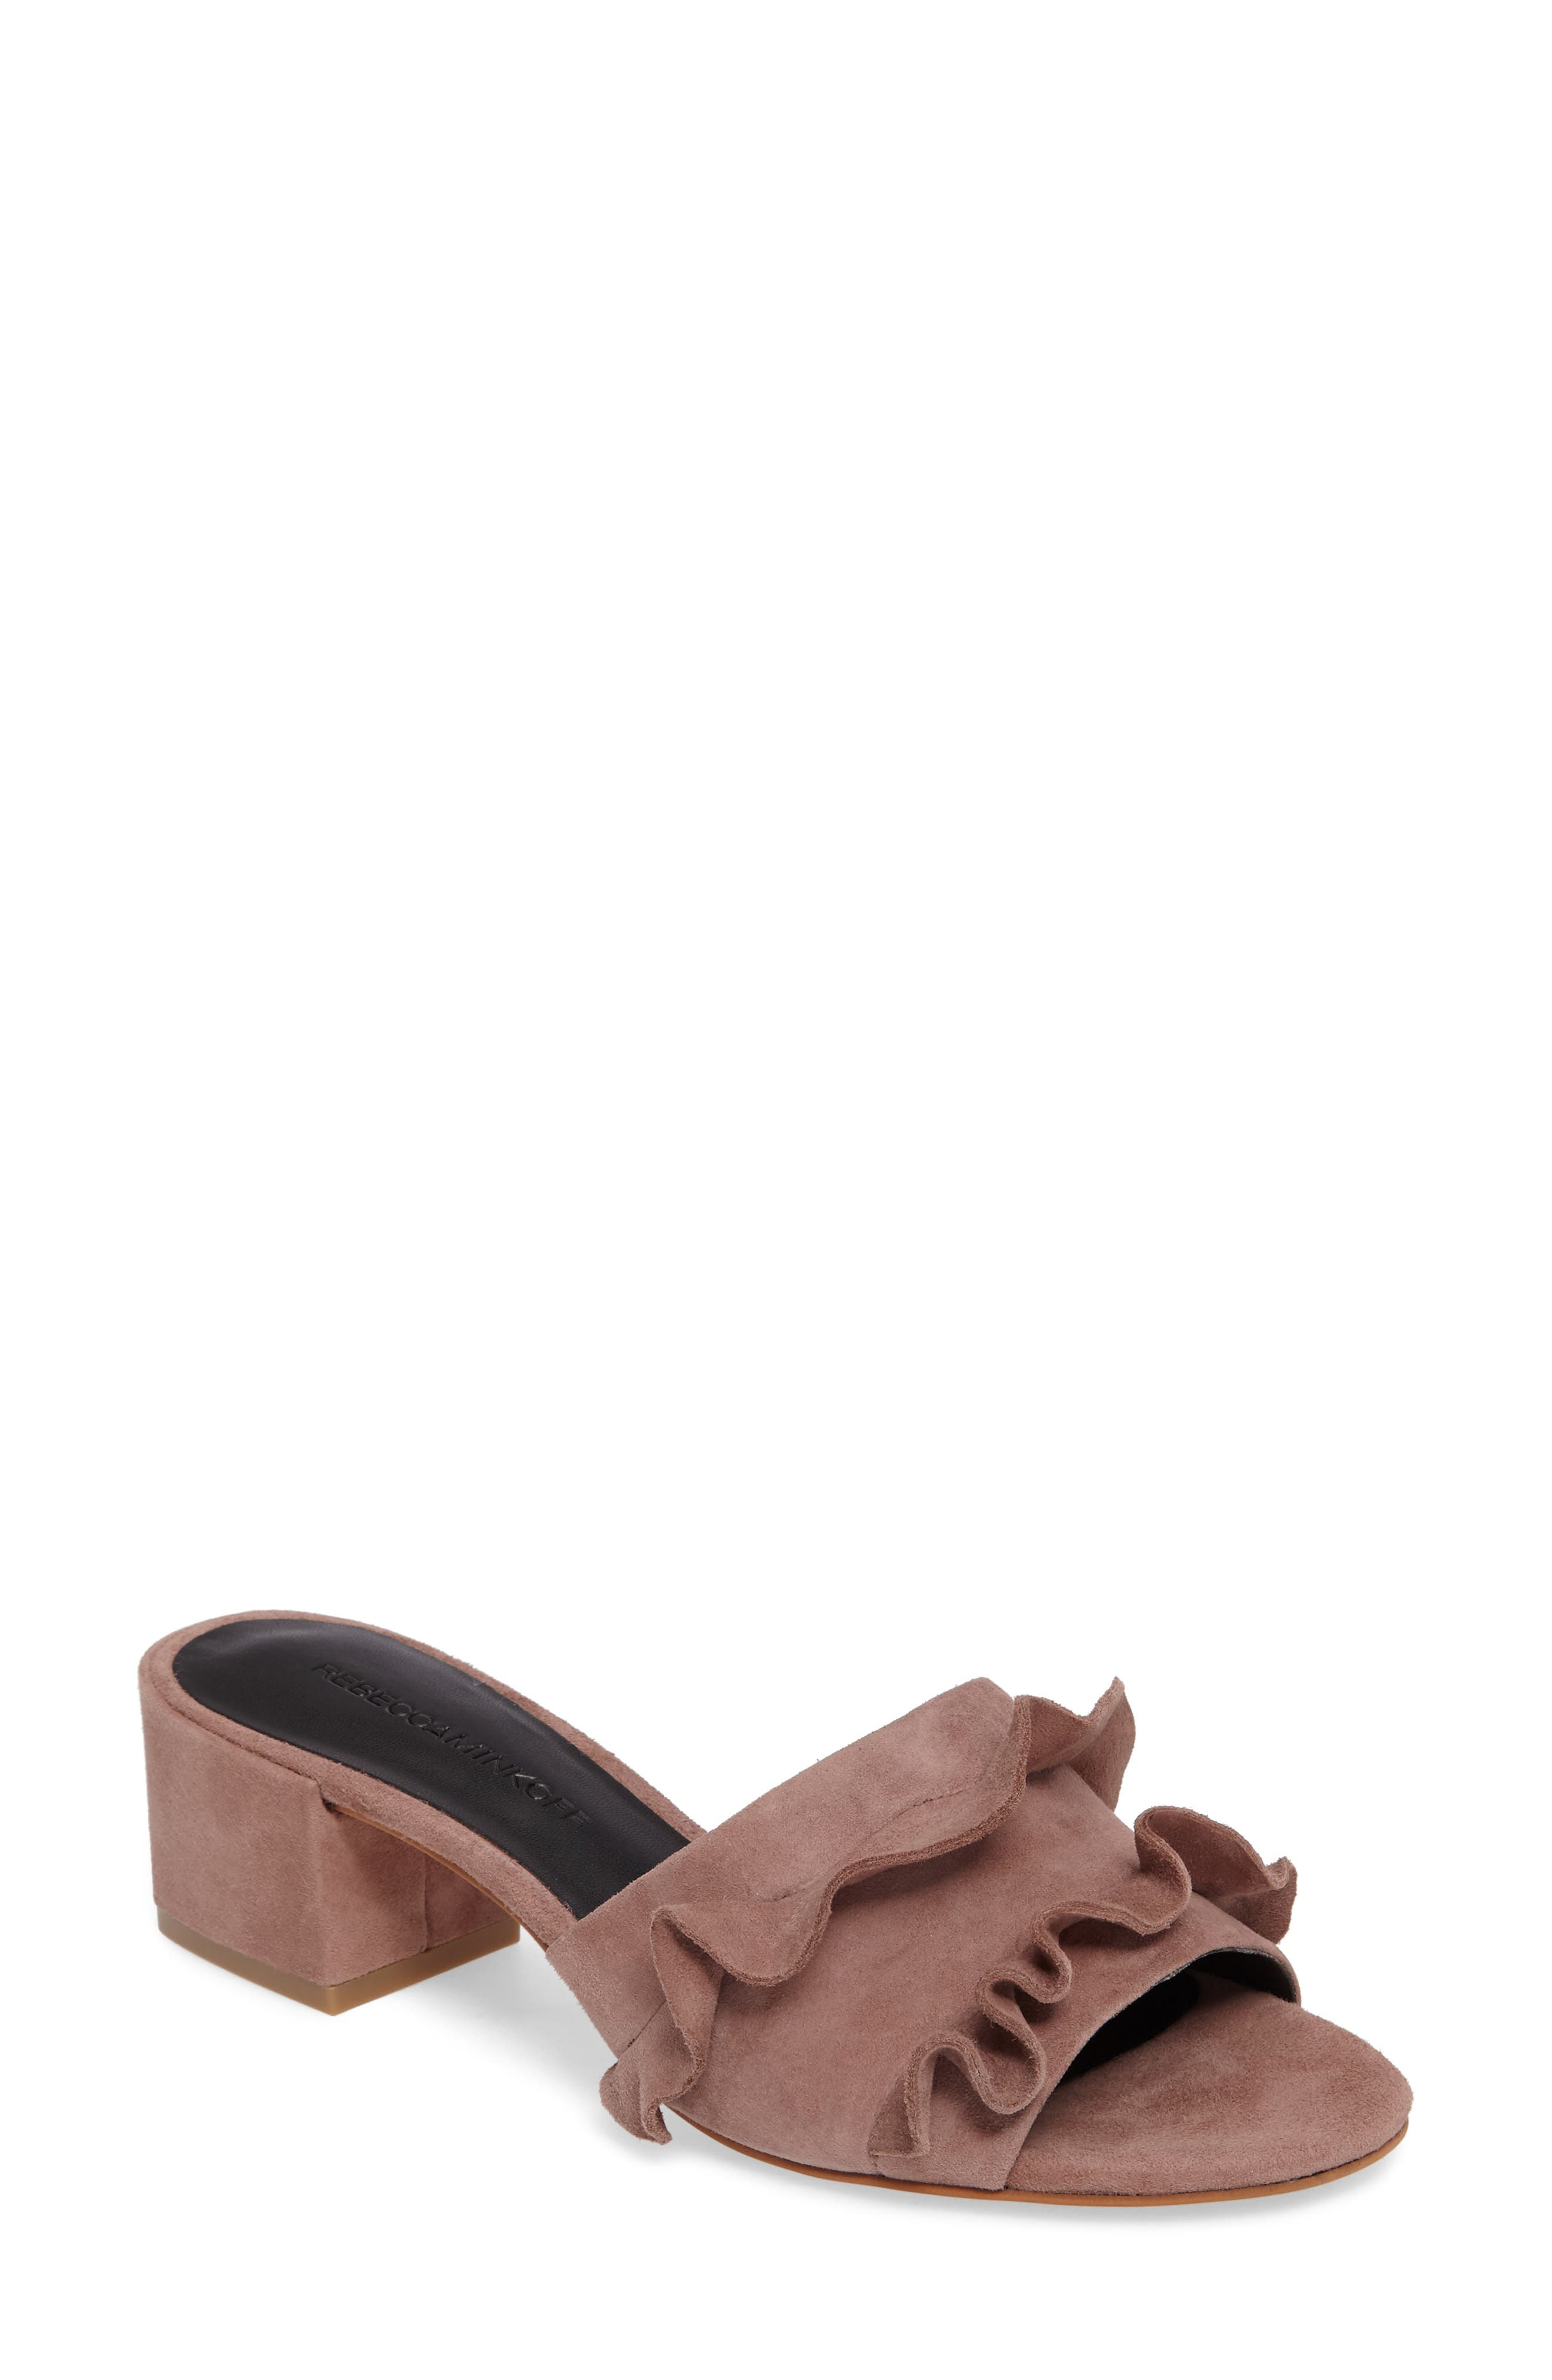 Isabelle Ruffle Mule Sandal,                             Main thumbnail 1, color,                             Berry Smoothie Suede